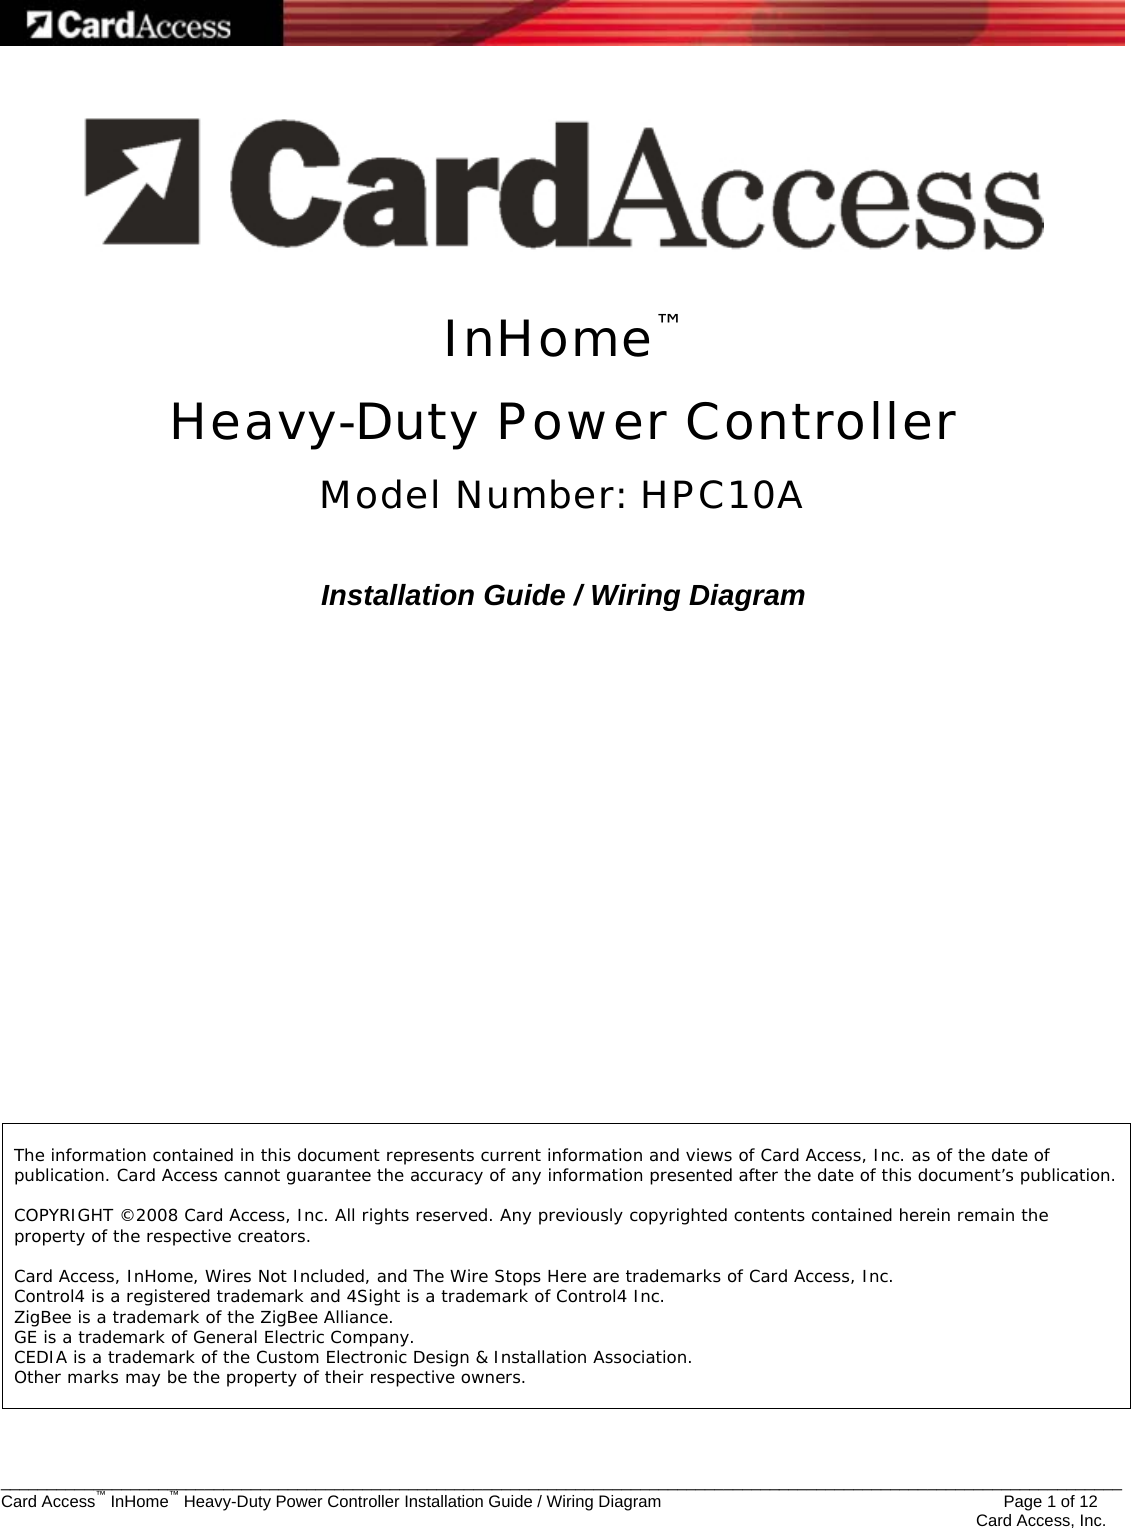 Card Access Hpc10 Heavy Duty Power Controller User Manual Exhibit 8 Wiring Diagram